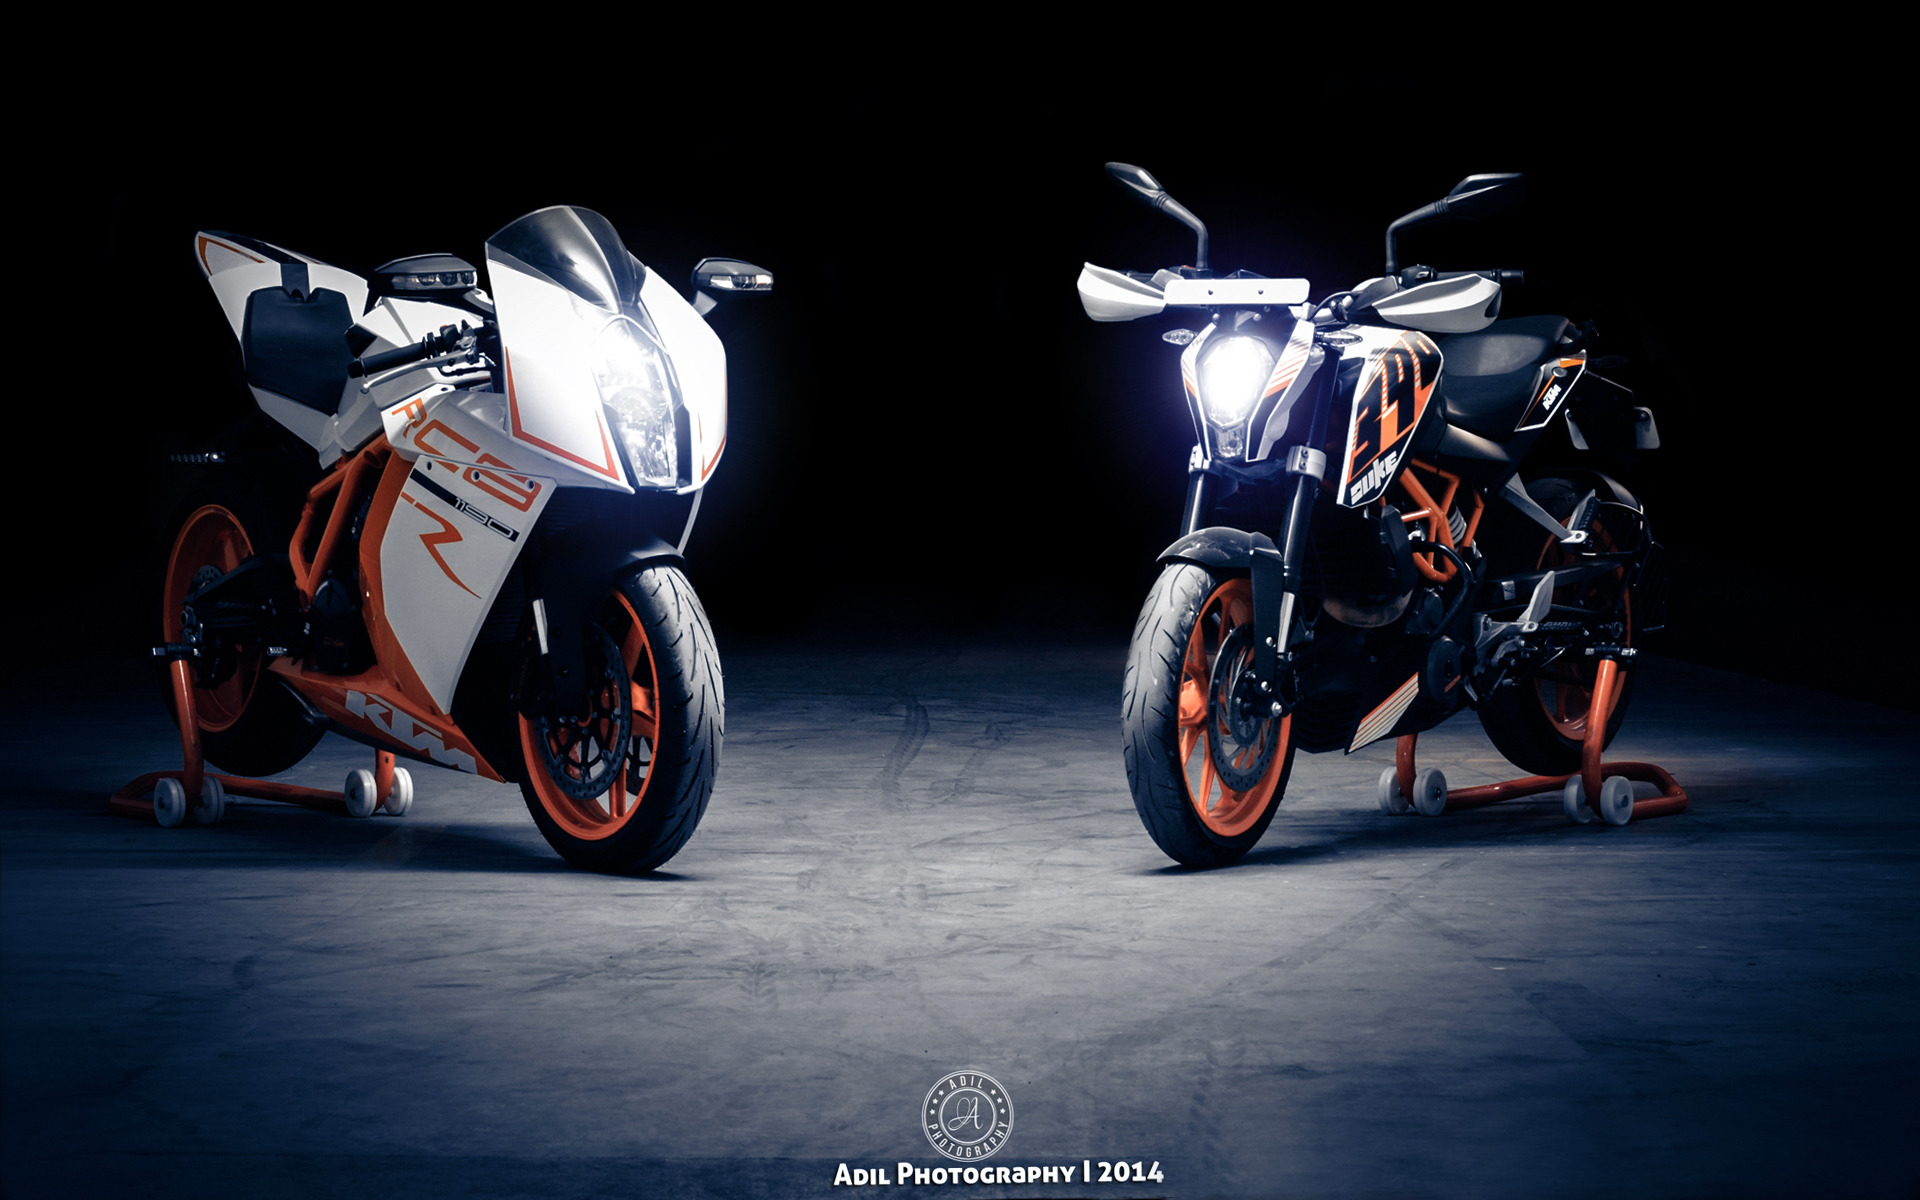 ktm 1190 rc8 and ktm 390 duke motorcycle hd wallpaper 19201200 10449 1920x1200